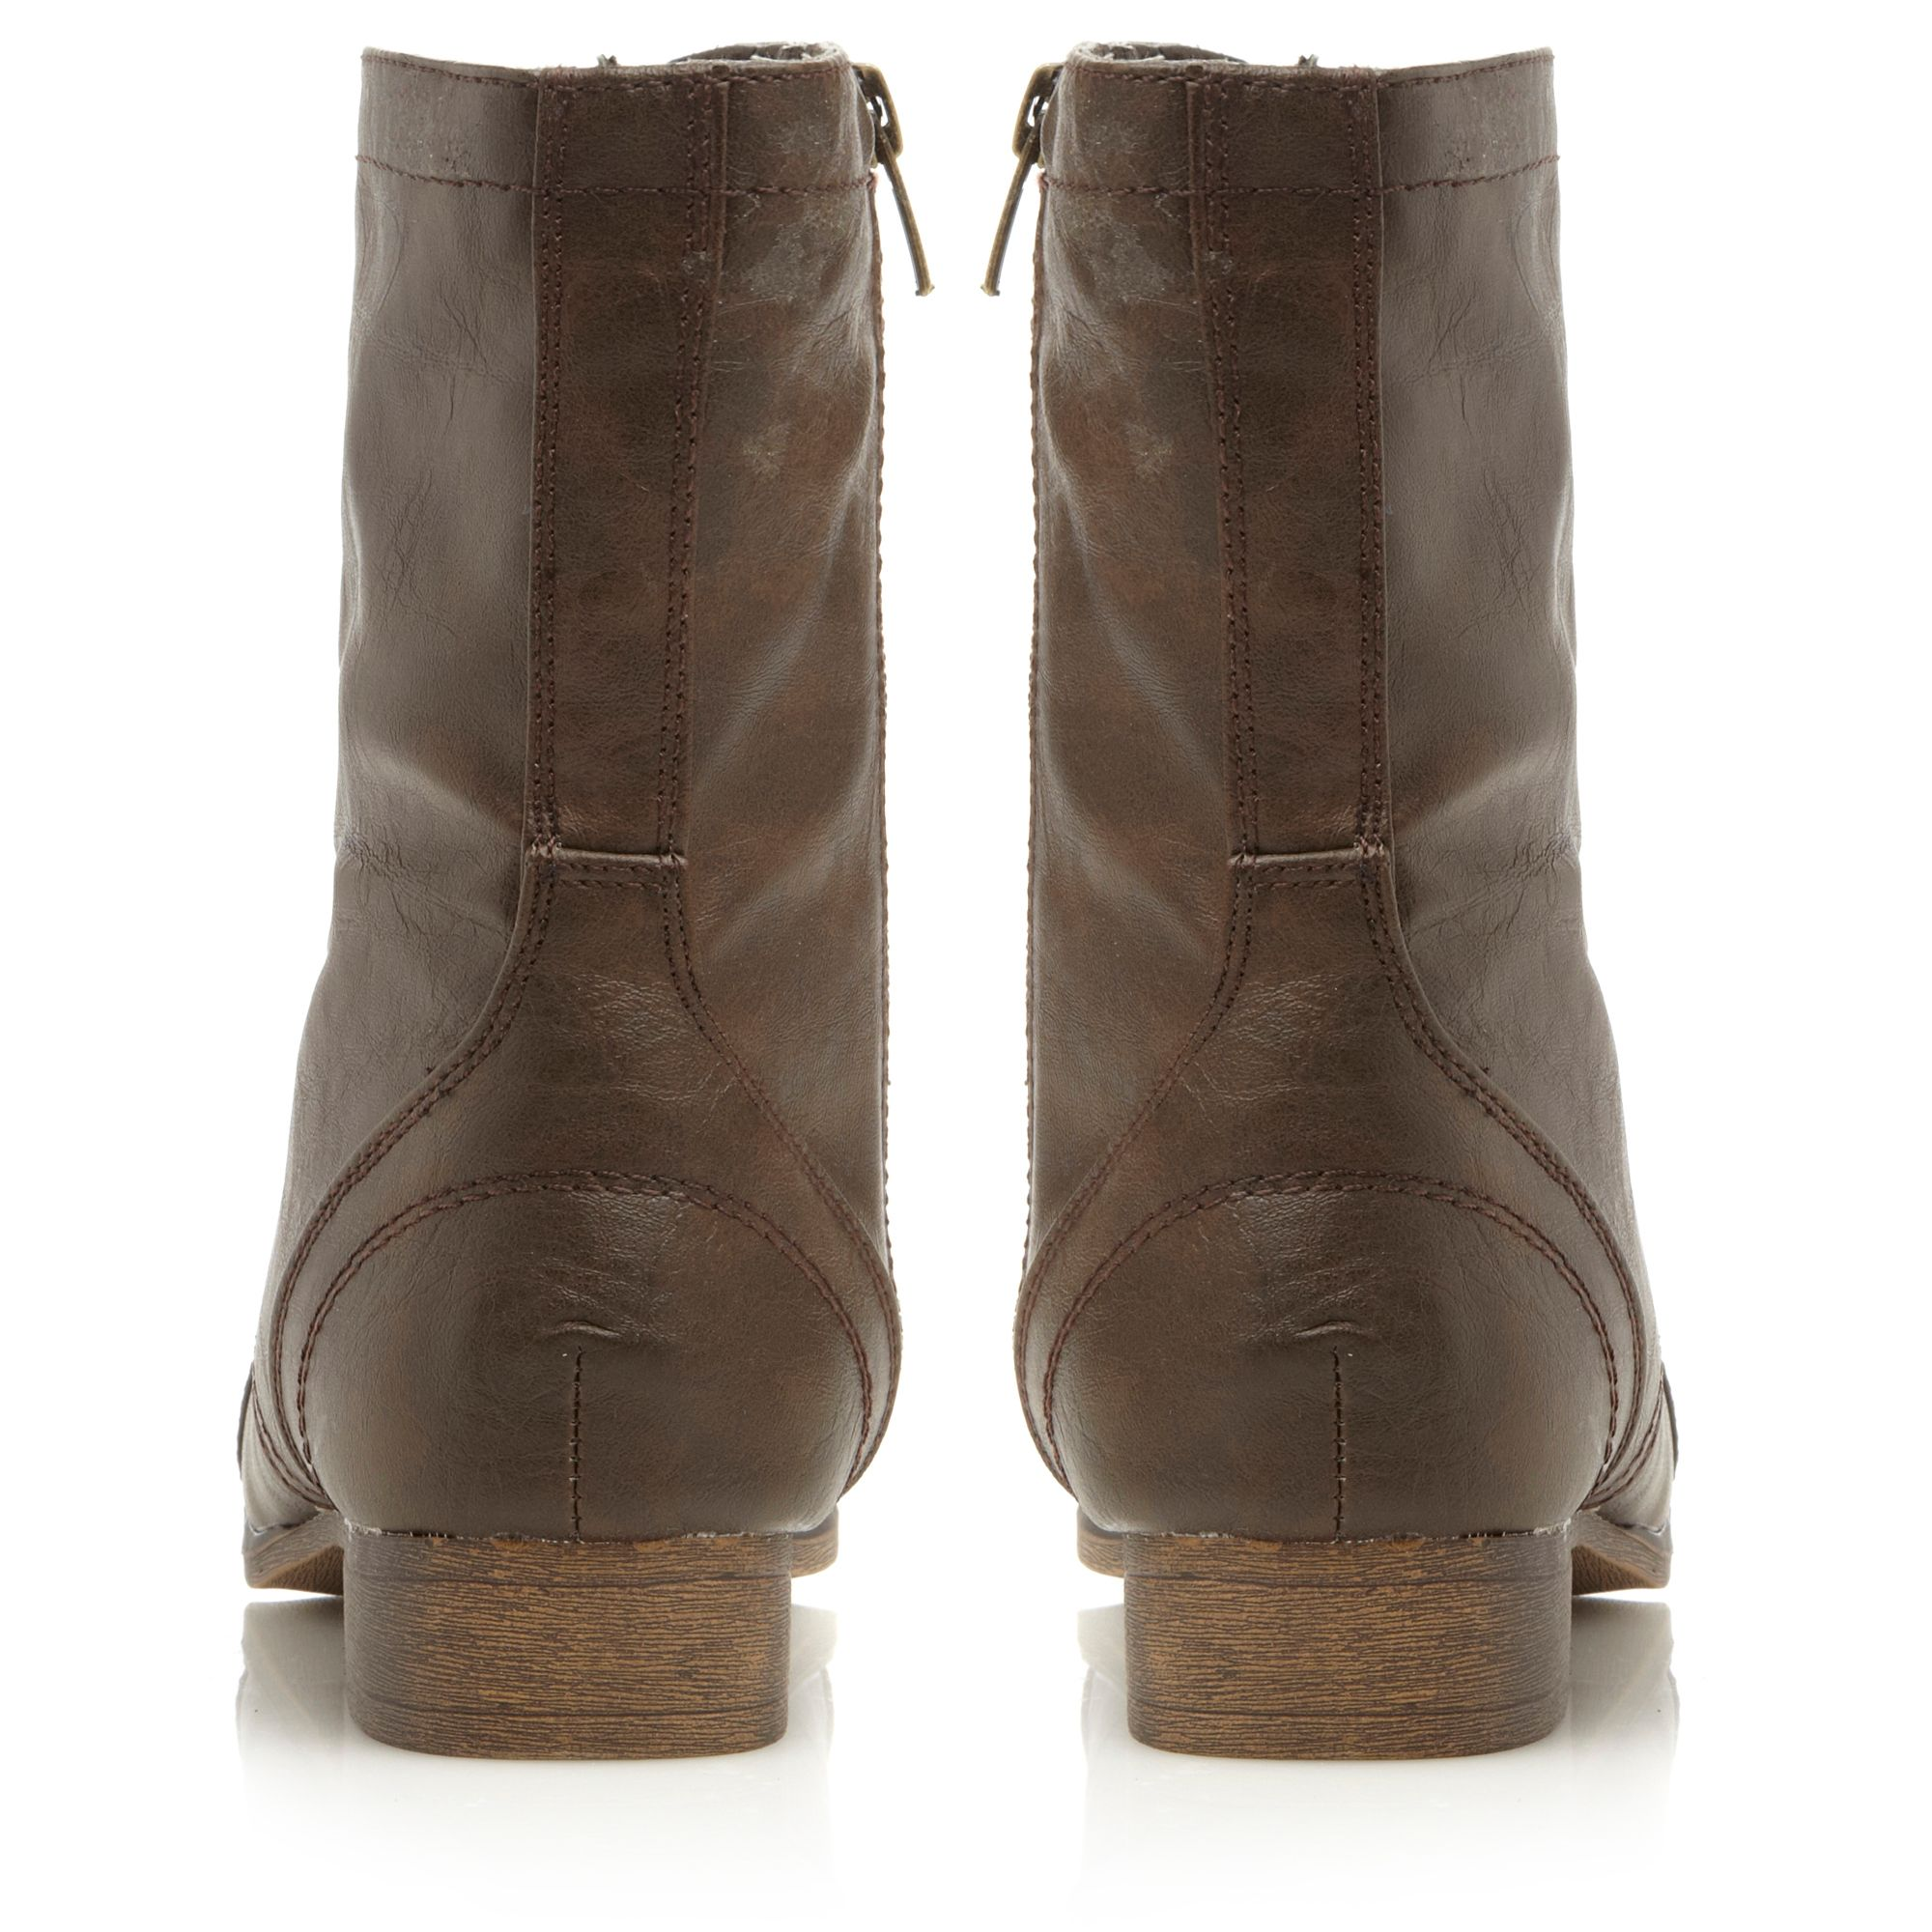 Madden Girl Gamer Round Toe Military Boots in Brown